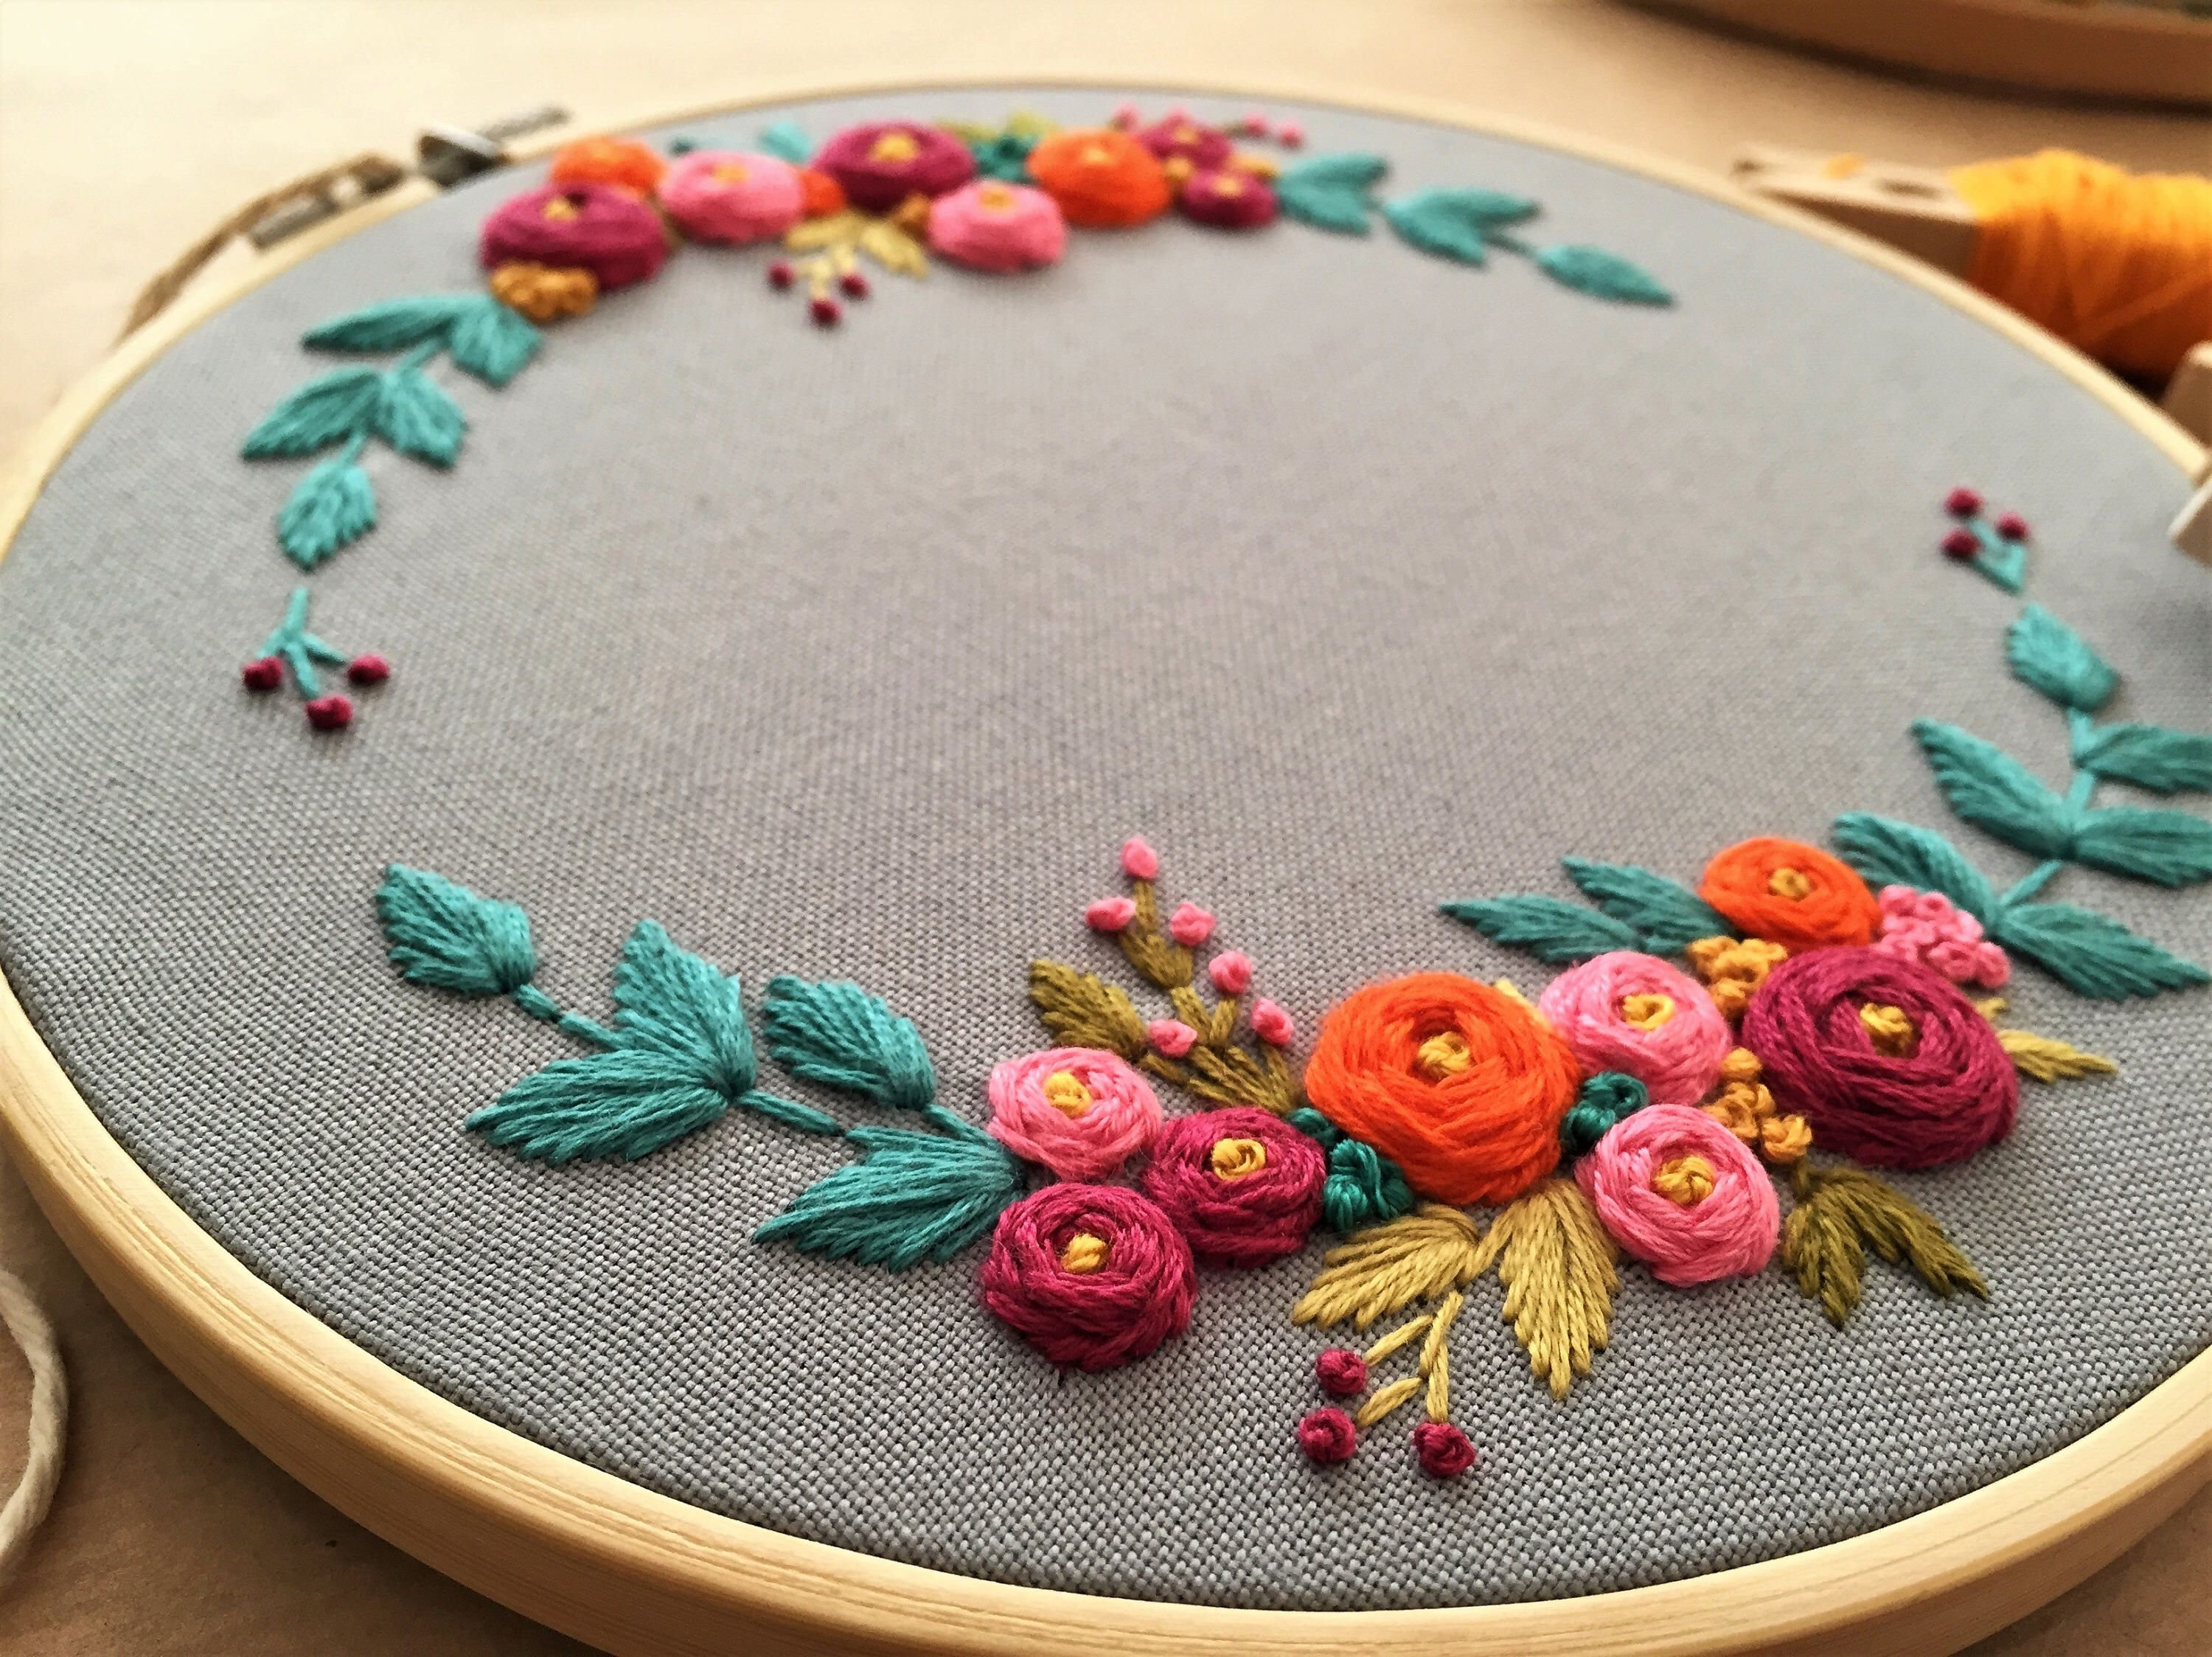 Embroidery Hoop Art Broderie Hoop Art Home Decor Hand Embroidery